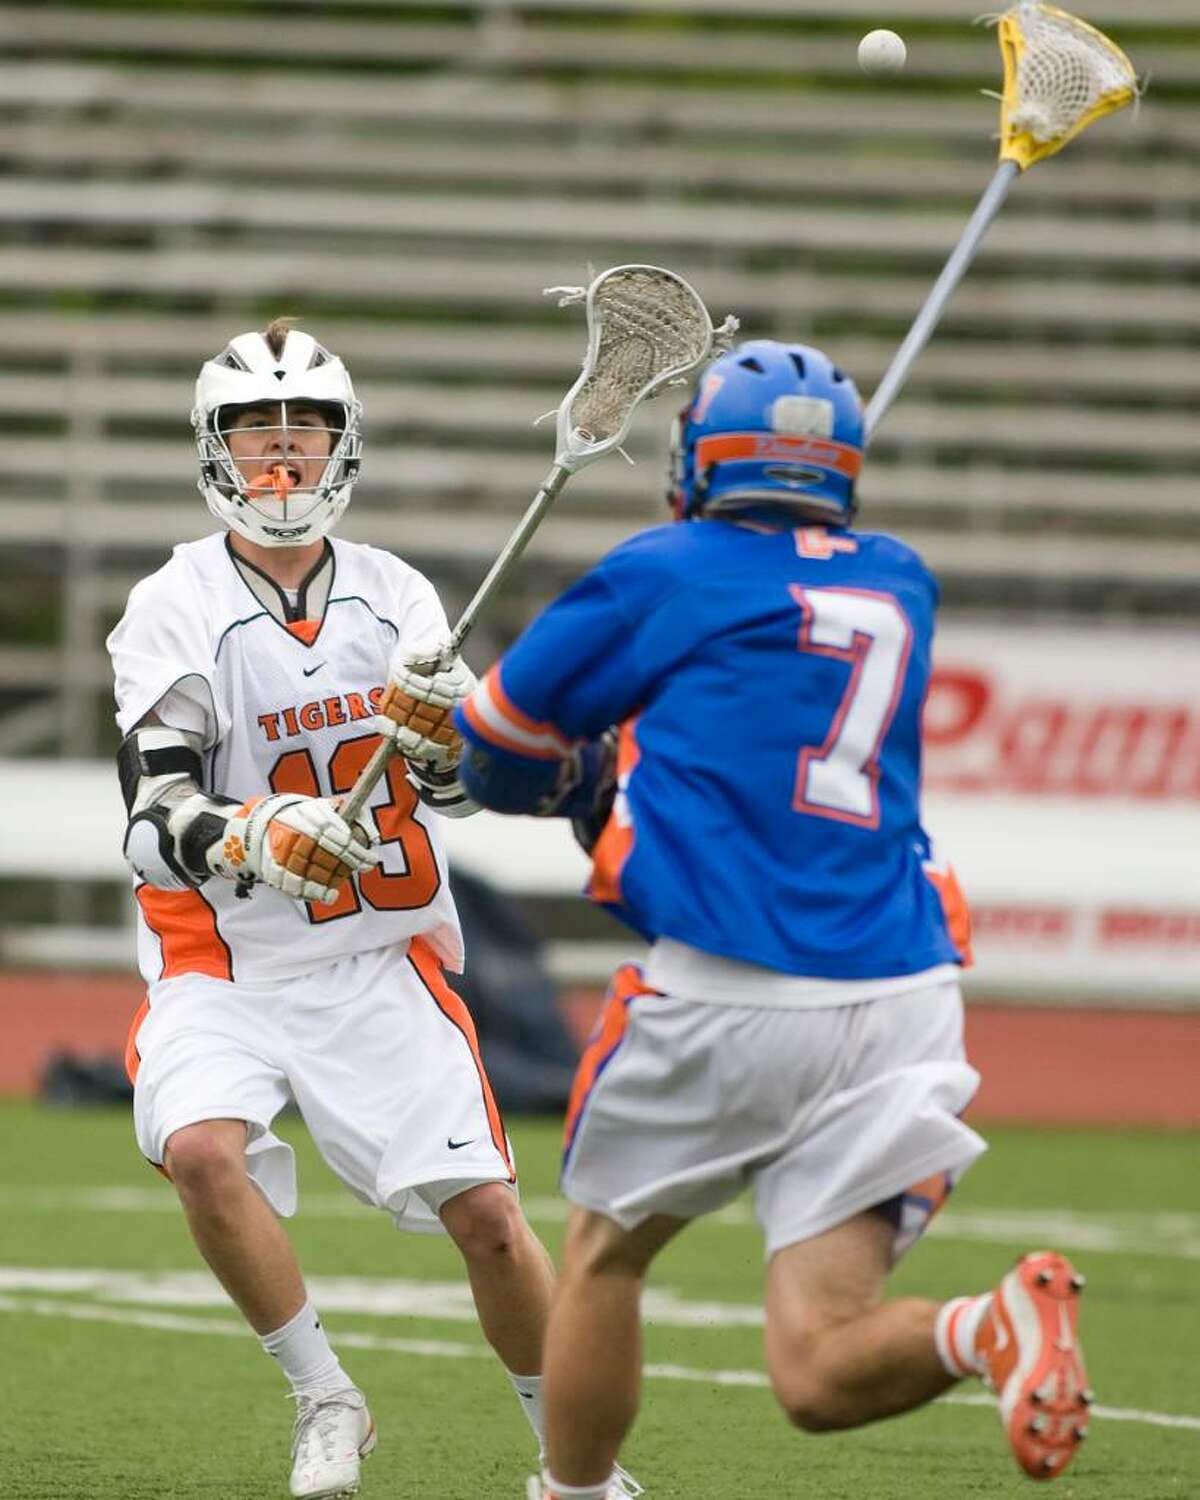 Ridgefield's Aidan Scott (13) sets up a Tiger goal by flicking a pass over the head of Danbury's Austin Lee to teammate Mike Galione, who scored on the play Tuesday at Ridgefield High.